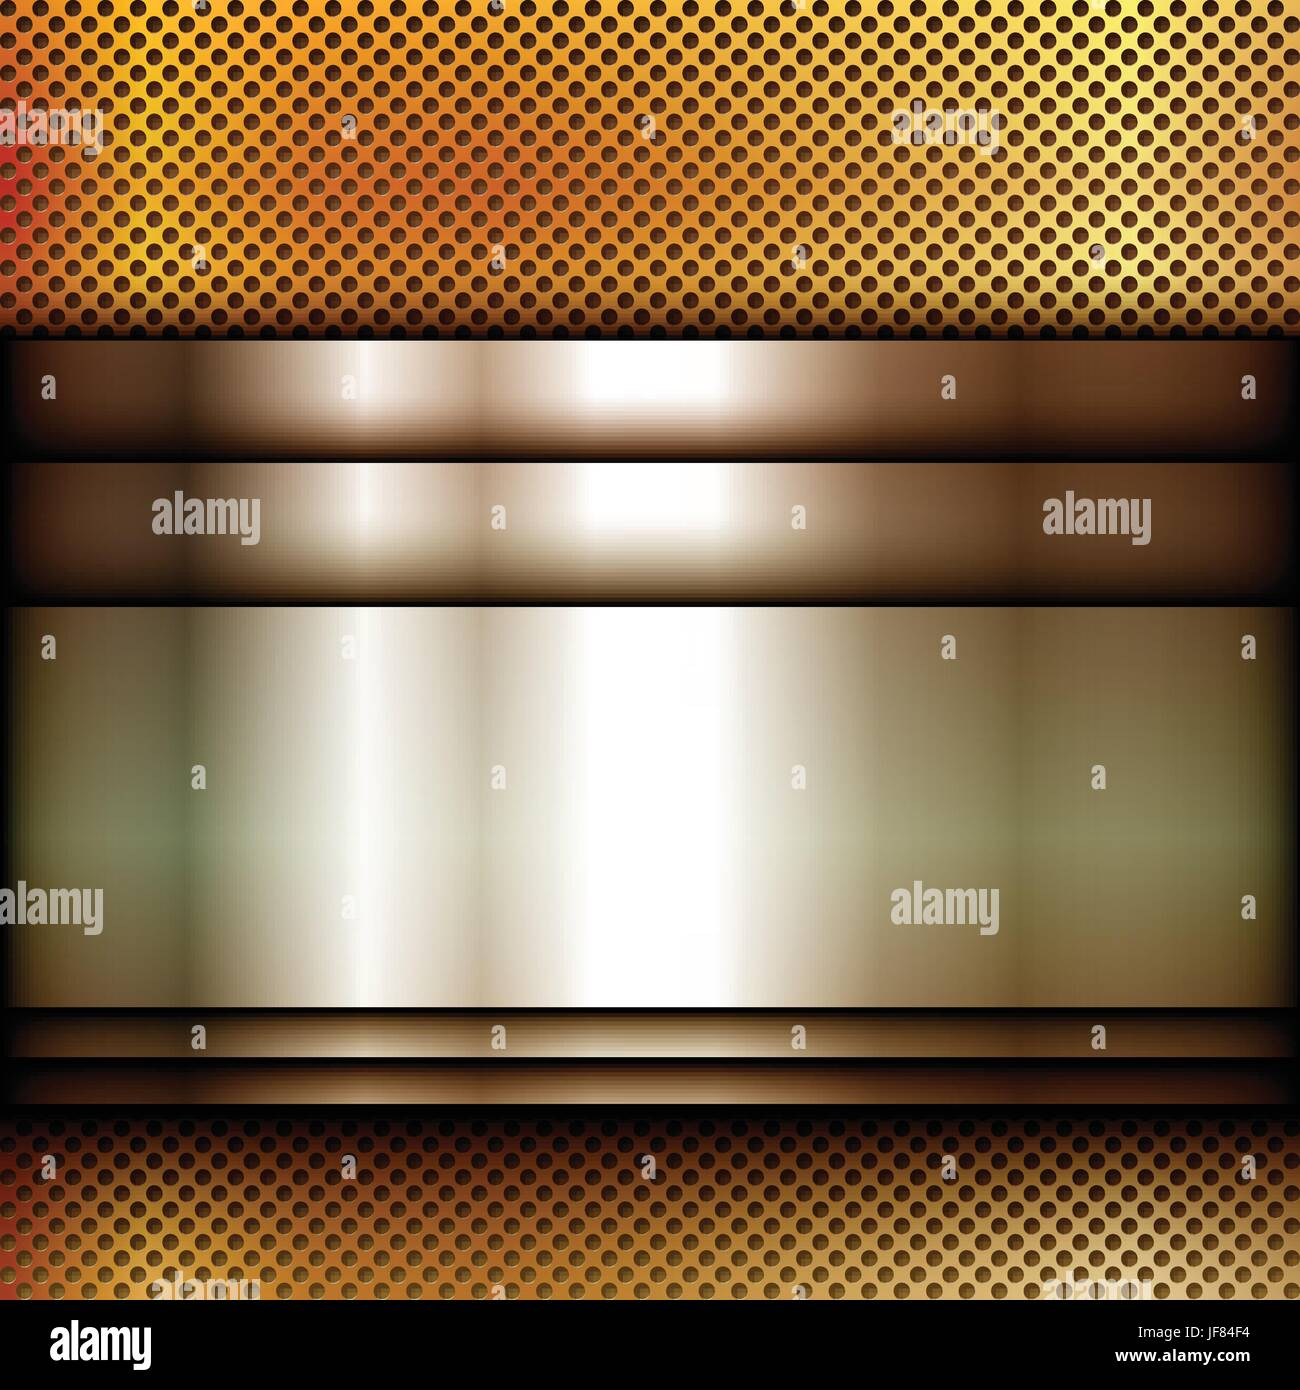 metal, square, banner, glossy, metallic, shaddow, shadow, gold, metal, square, - Stock Image